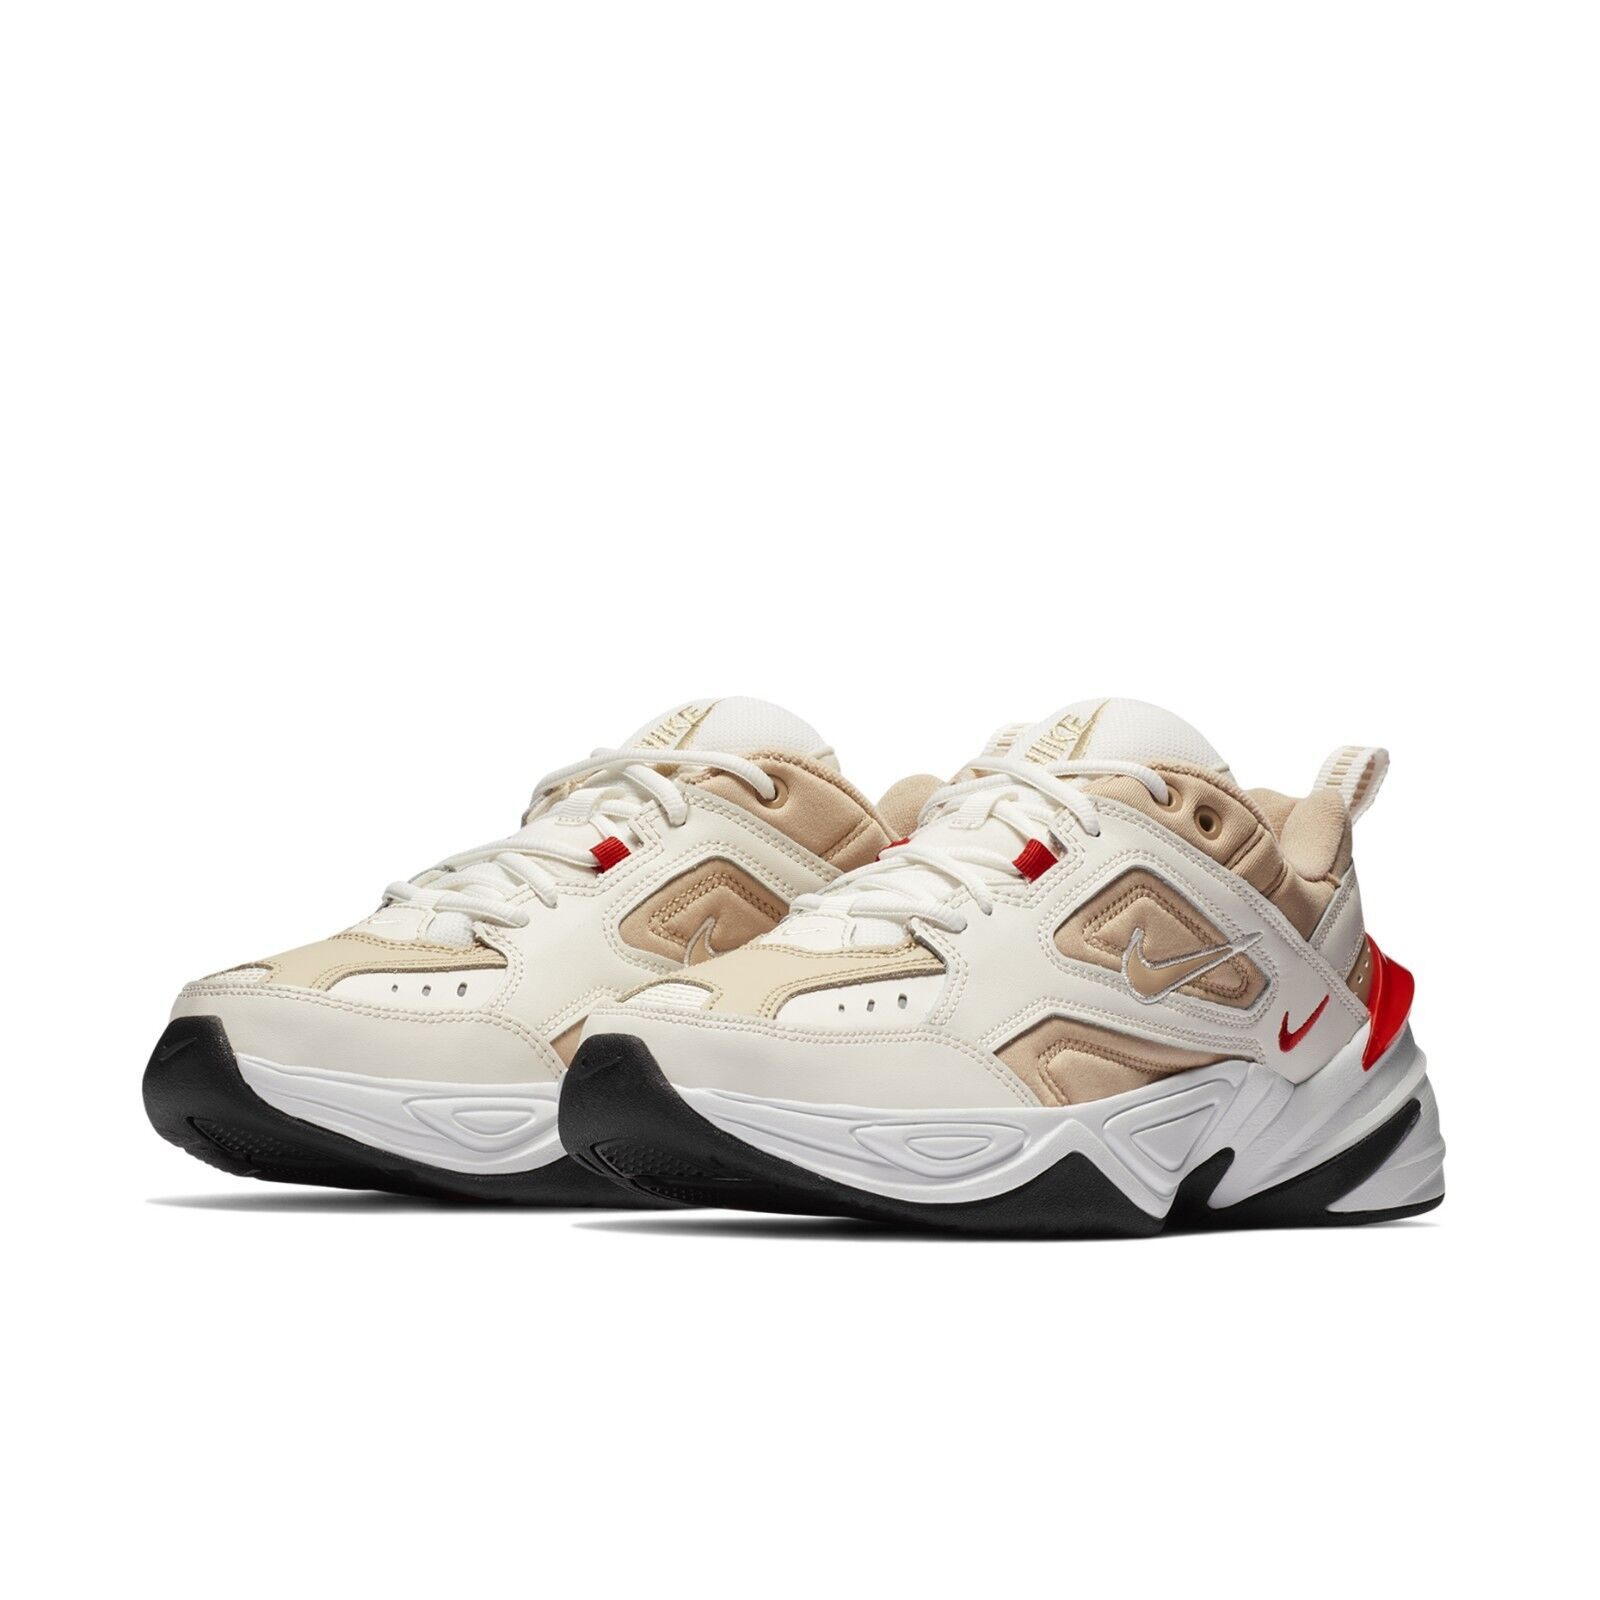 62f20df933654 Details about Nike Mens M2K Tekno Sail Habanero Red Daddy Shoes Chunky  Sneakers AV4789-102